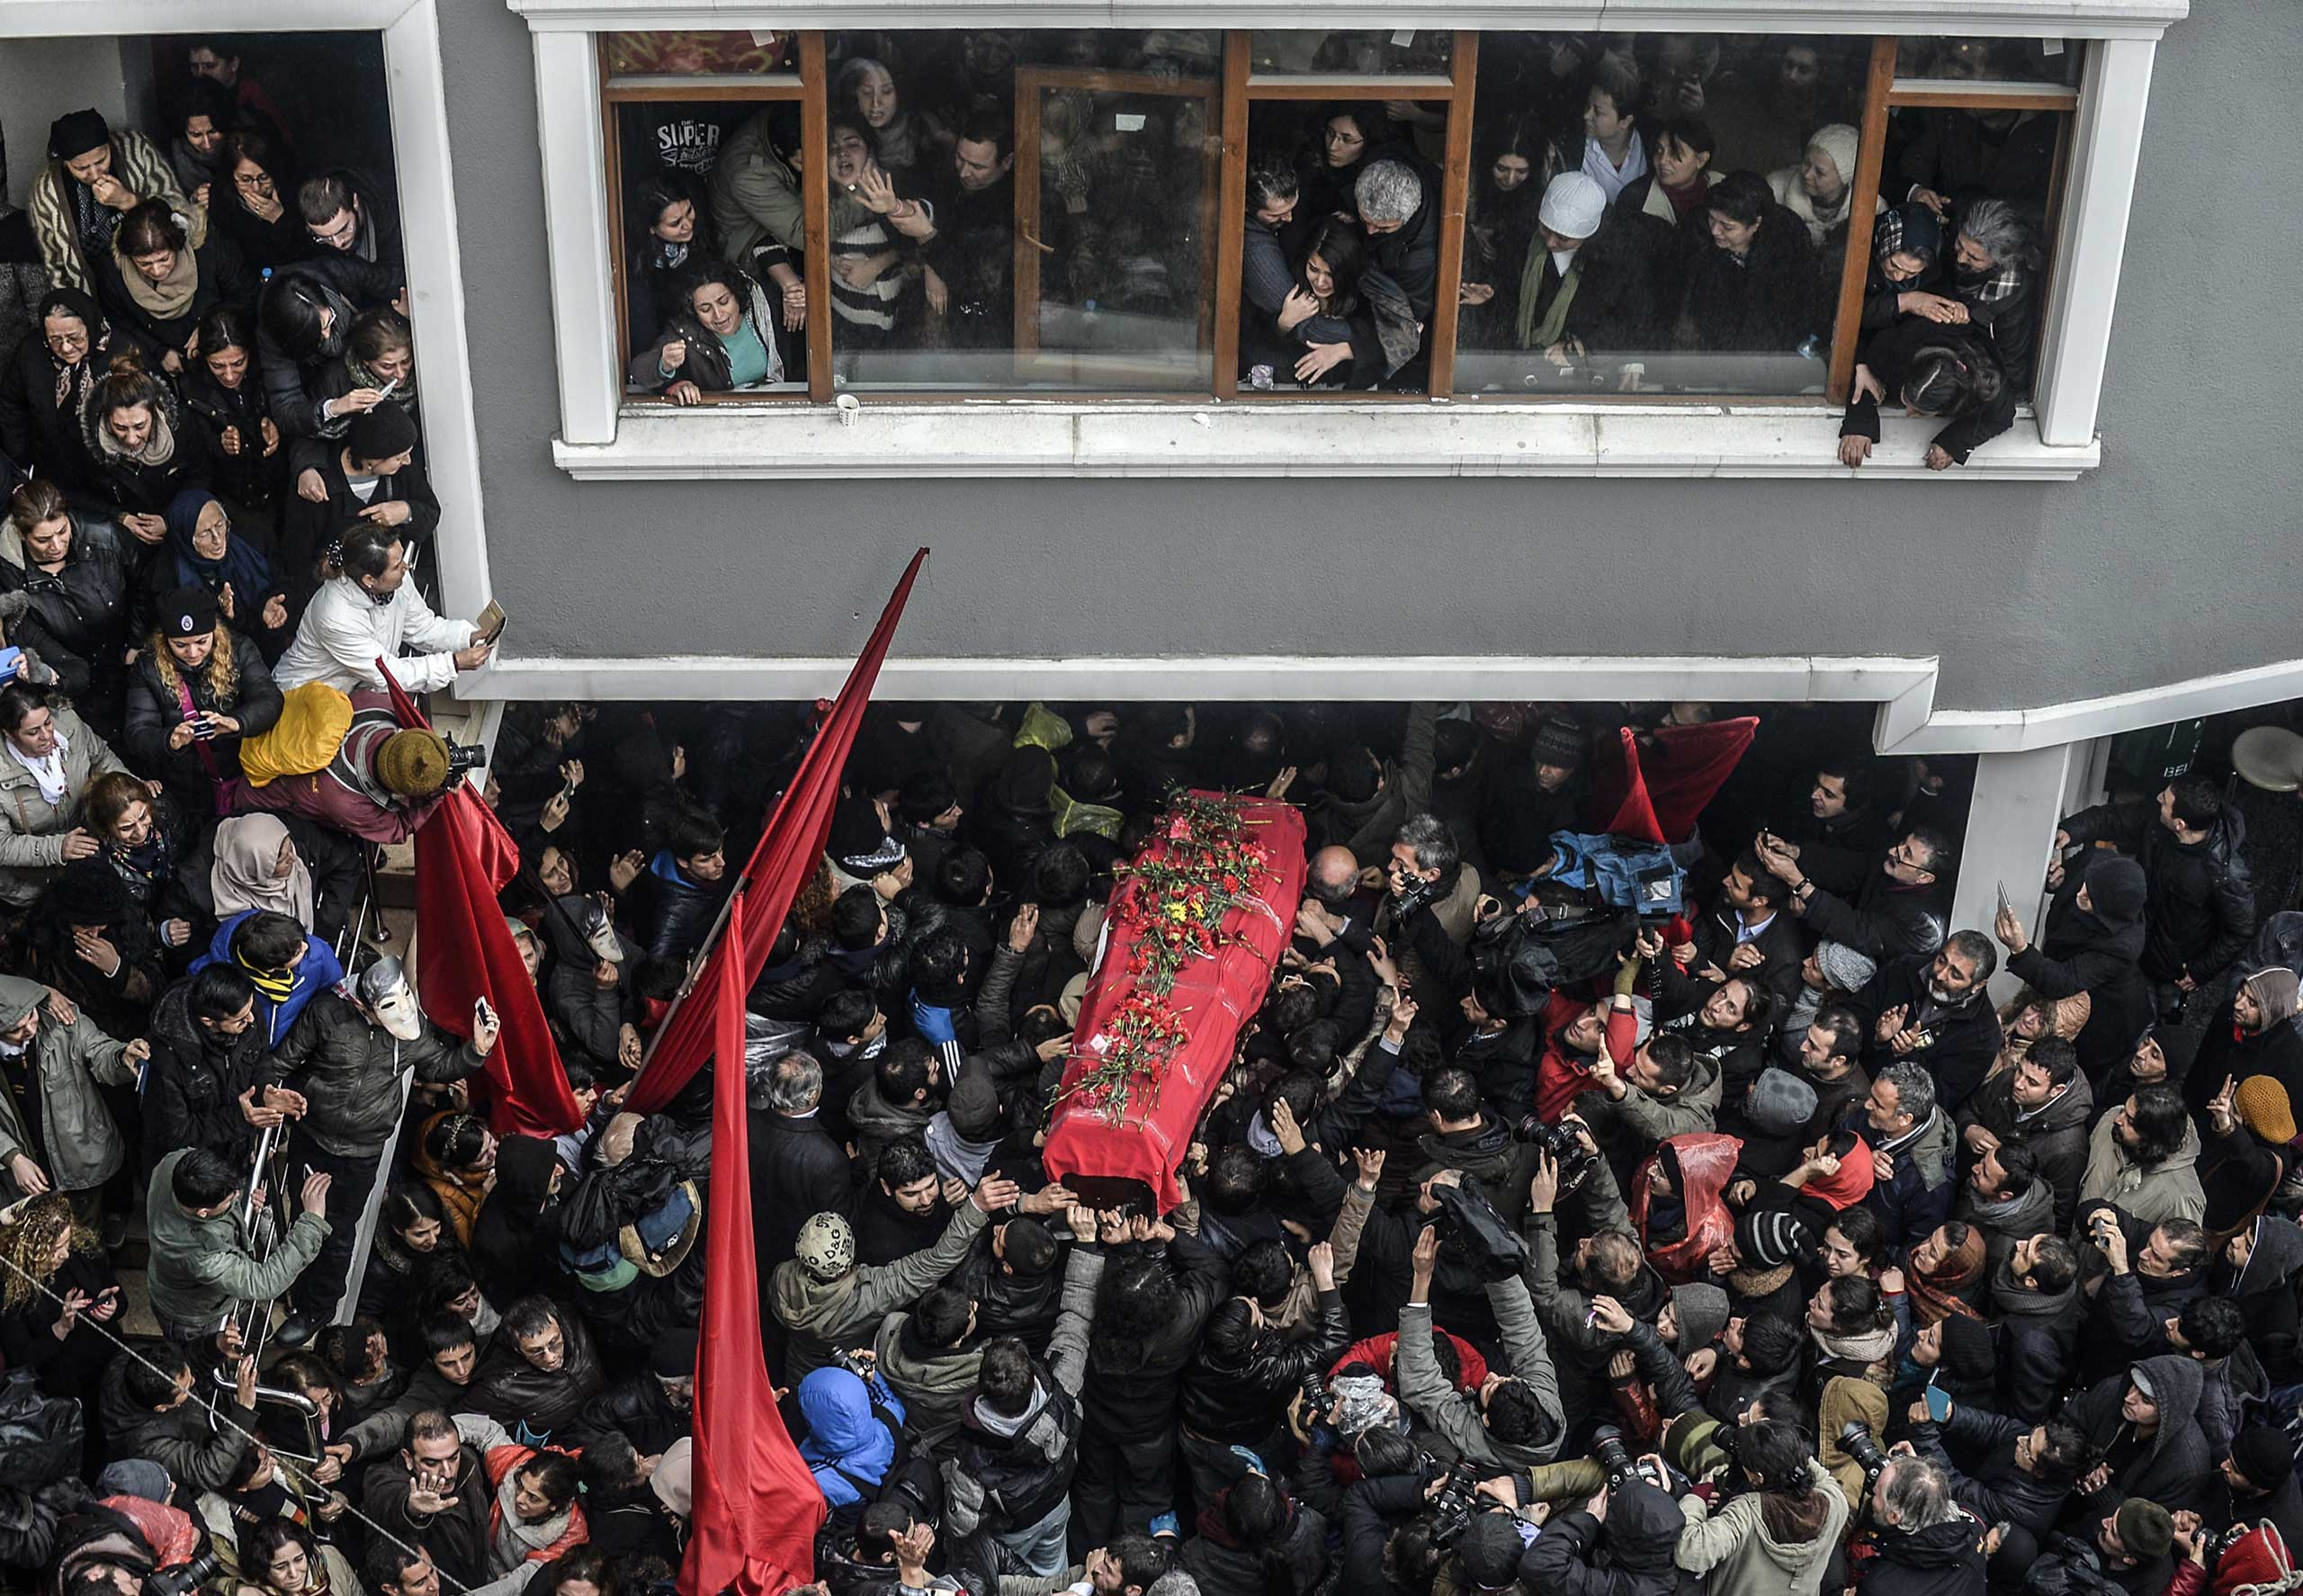 The coffin of Berkin Elvan is carried  on March 11, 2014, in Istanbul, Turkey. Berkin Elvan, who had been in a coma since June 2013 after being struck in the head by a gas canister during a police crackdown on protesters, died on March 11.